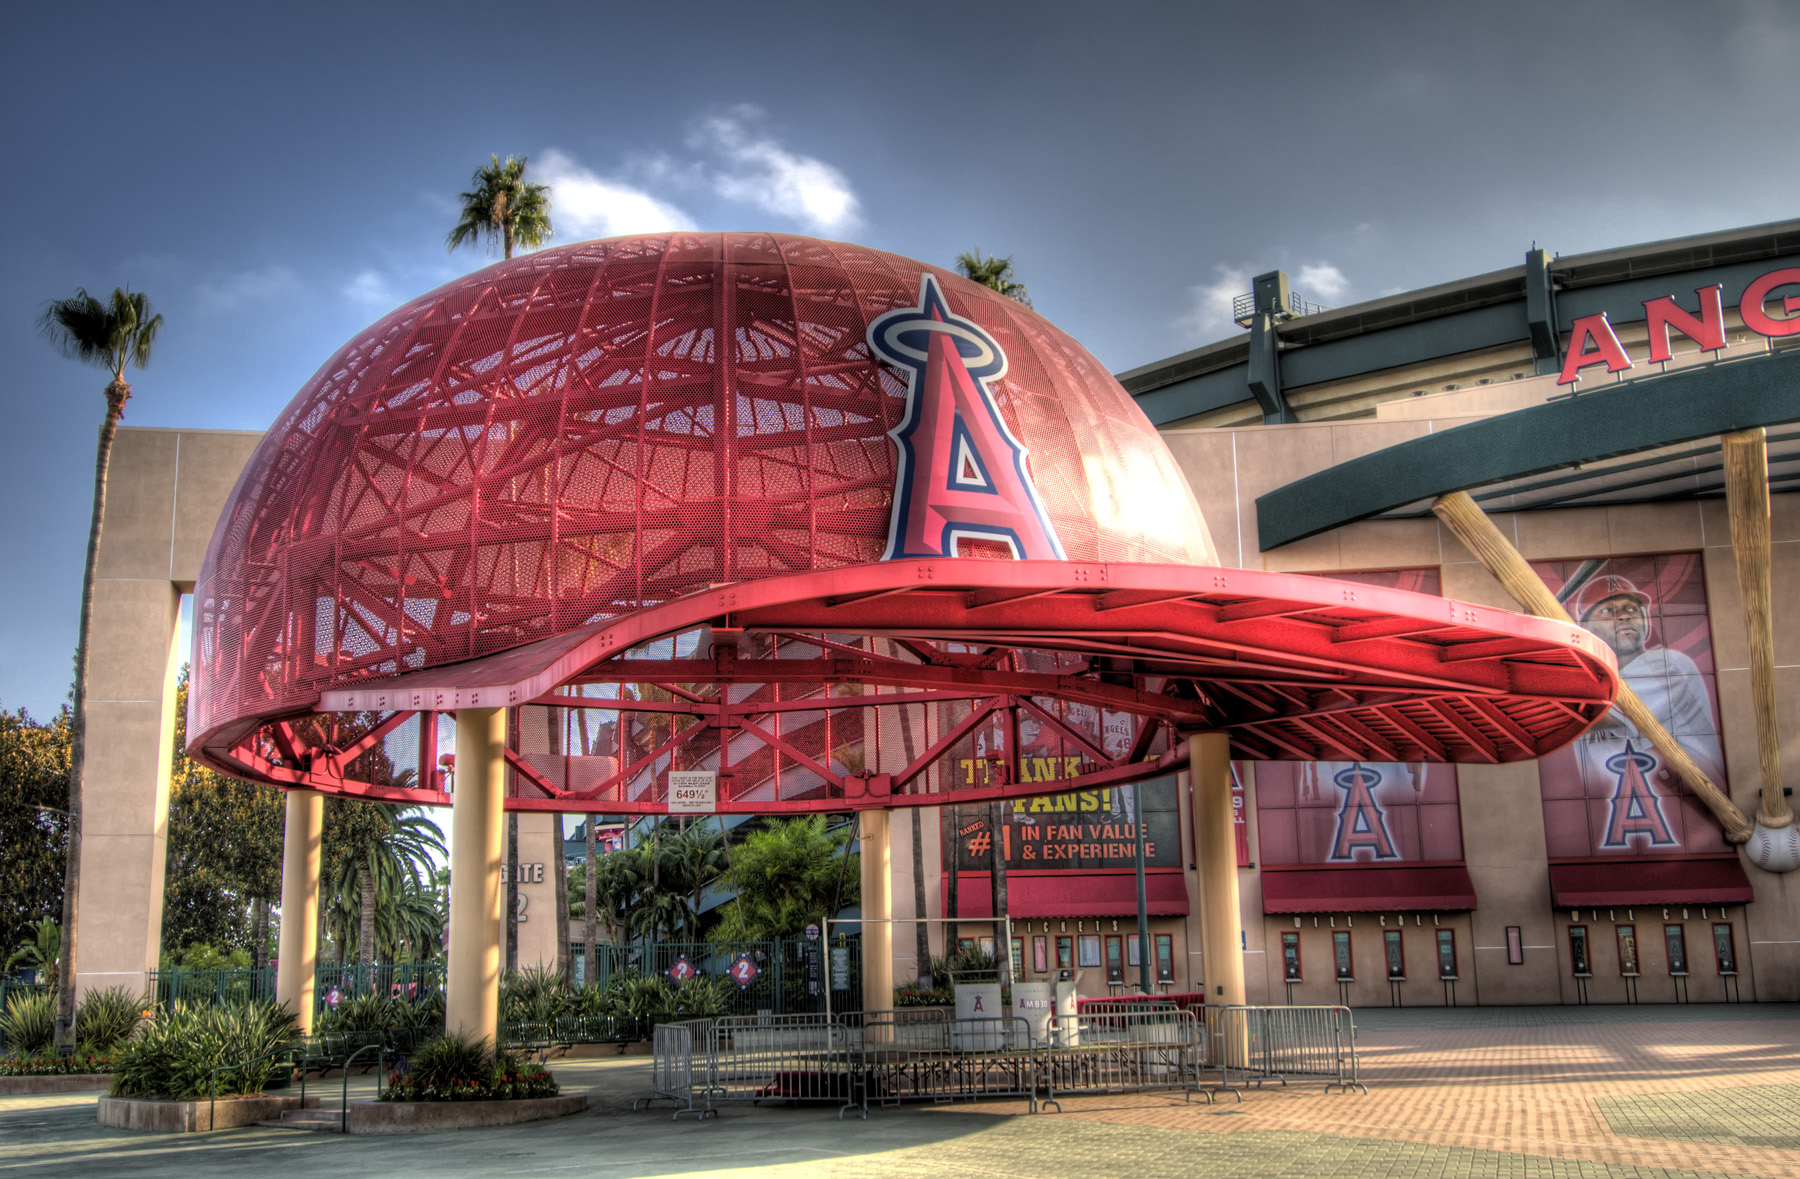 Angeles Angels of Anaheim wallpapers Los Angeles Angels of Anaheim 1800x1179